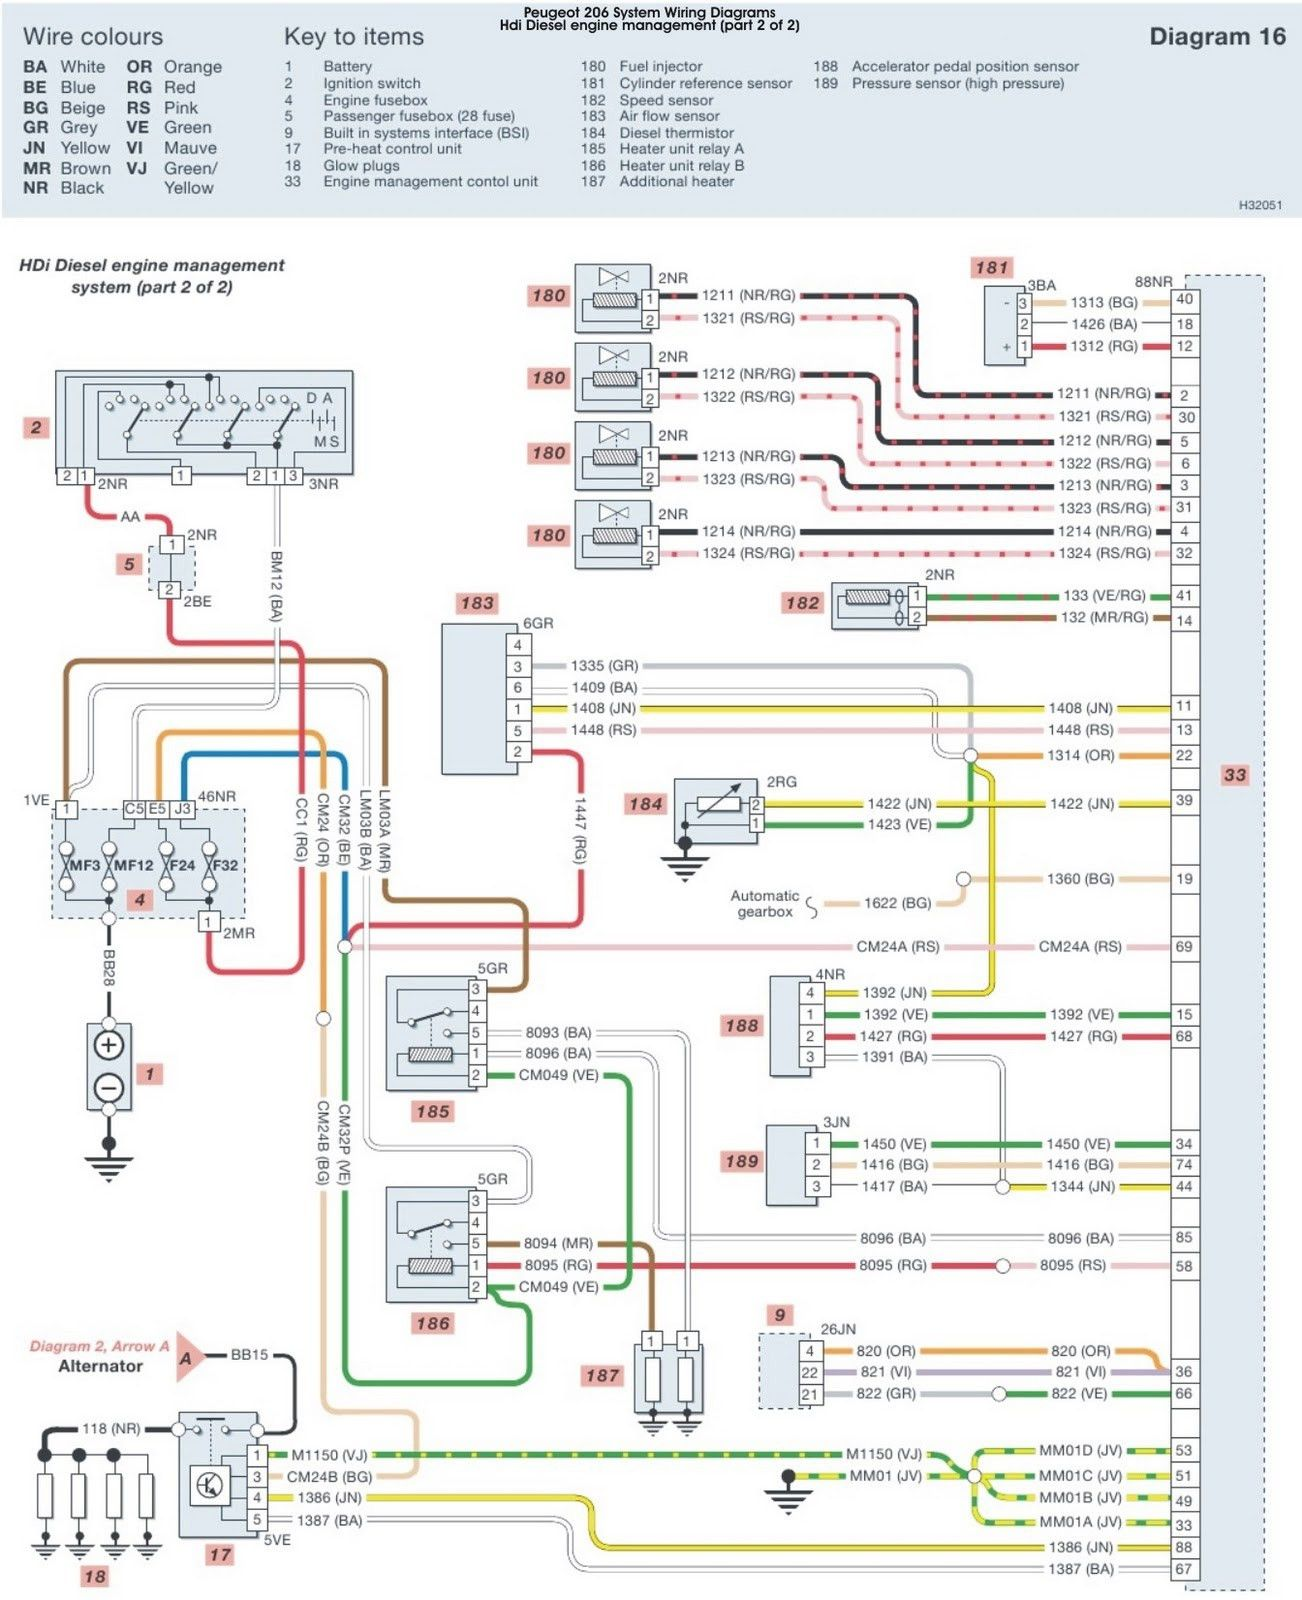 medium resolution of peugeot wiring diagram download wiring diagram fascinating peugeot 607 wiring diagram free download peugeot 607 wiring diagram